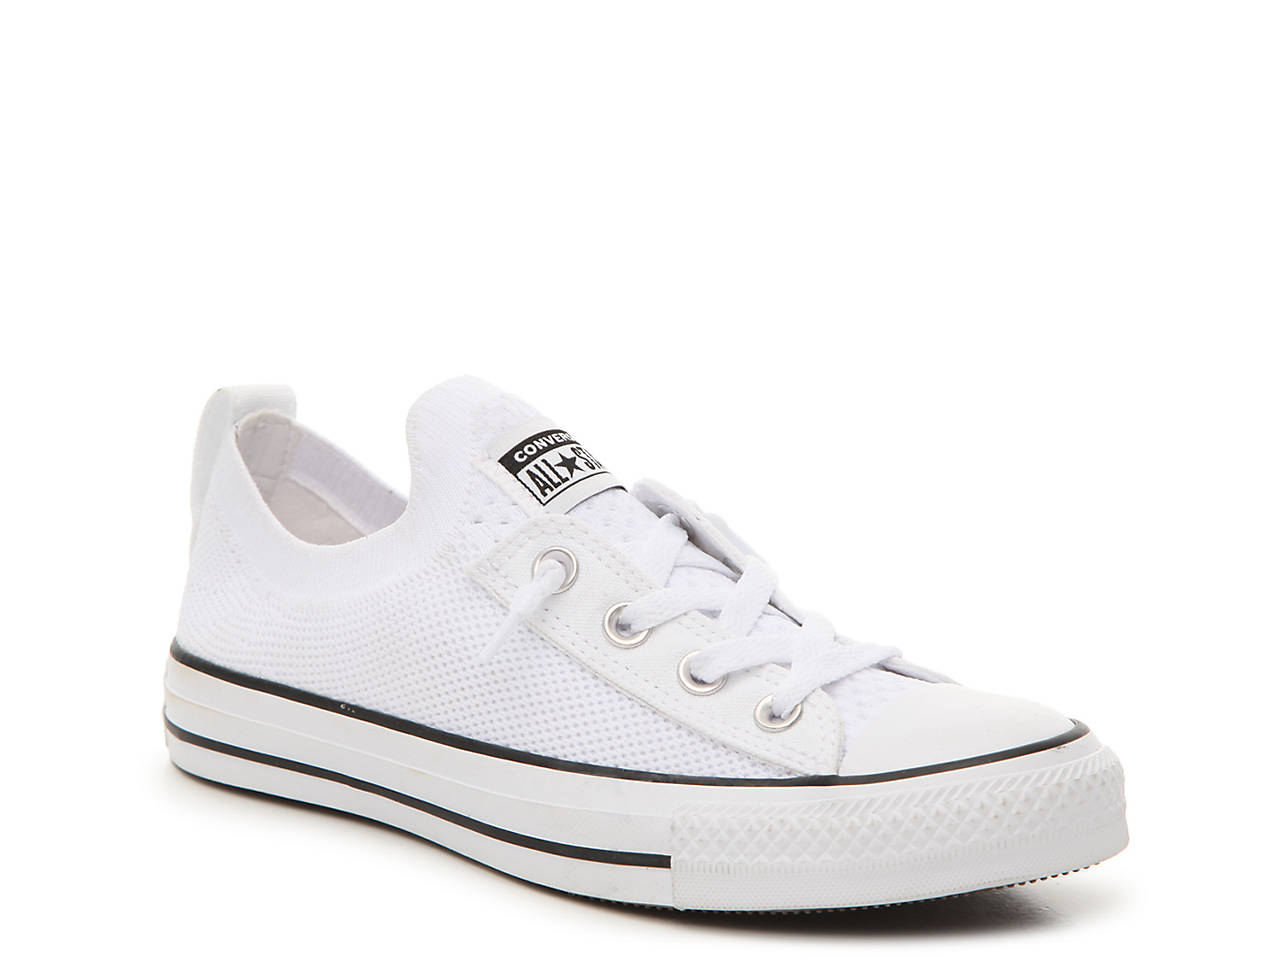 Converse Chuck Taylor All Star Shoreline Knit Slip On